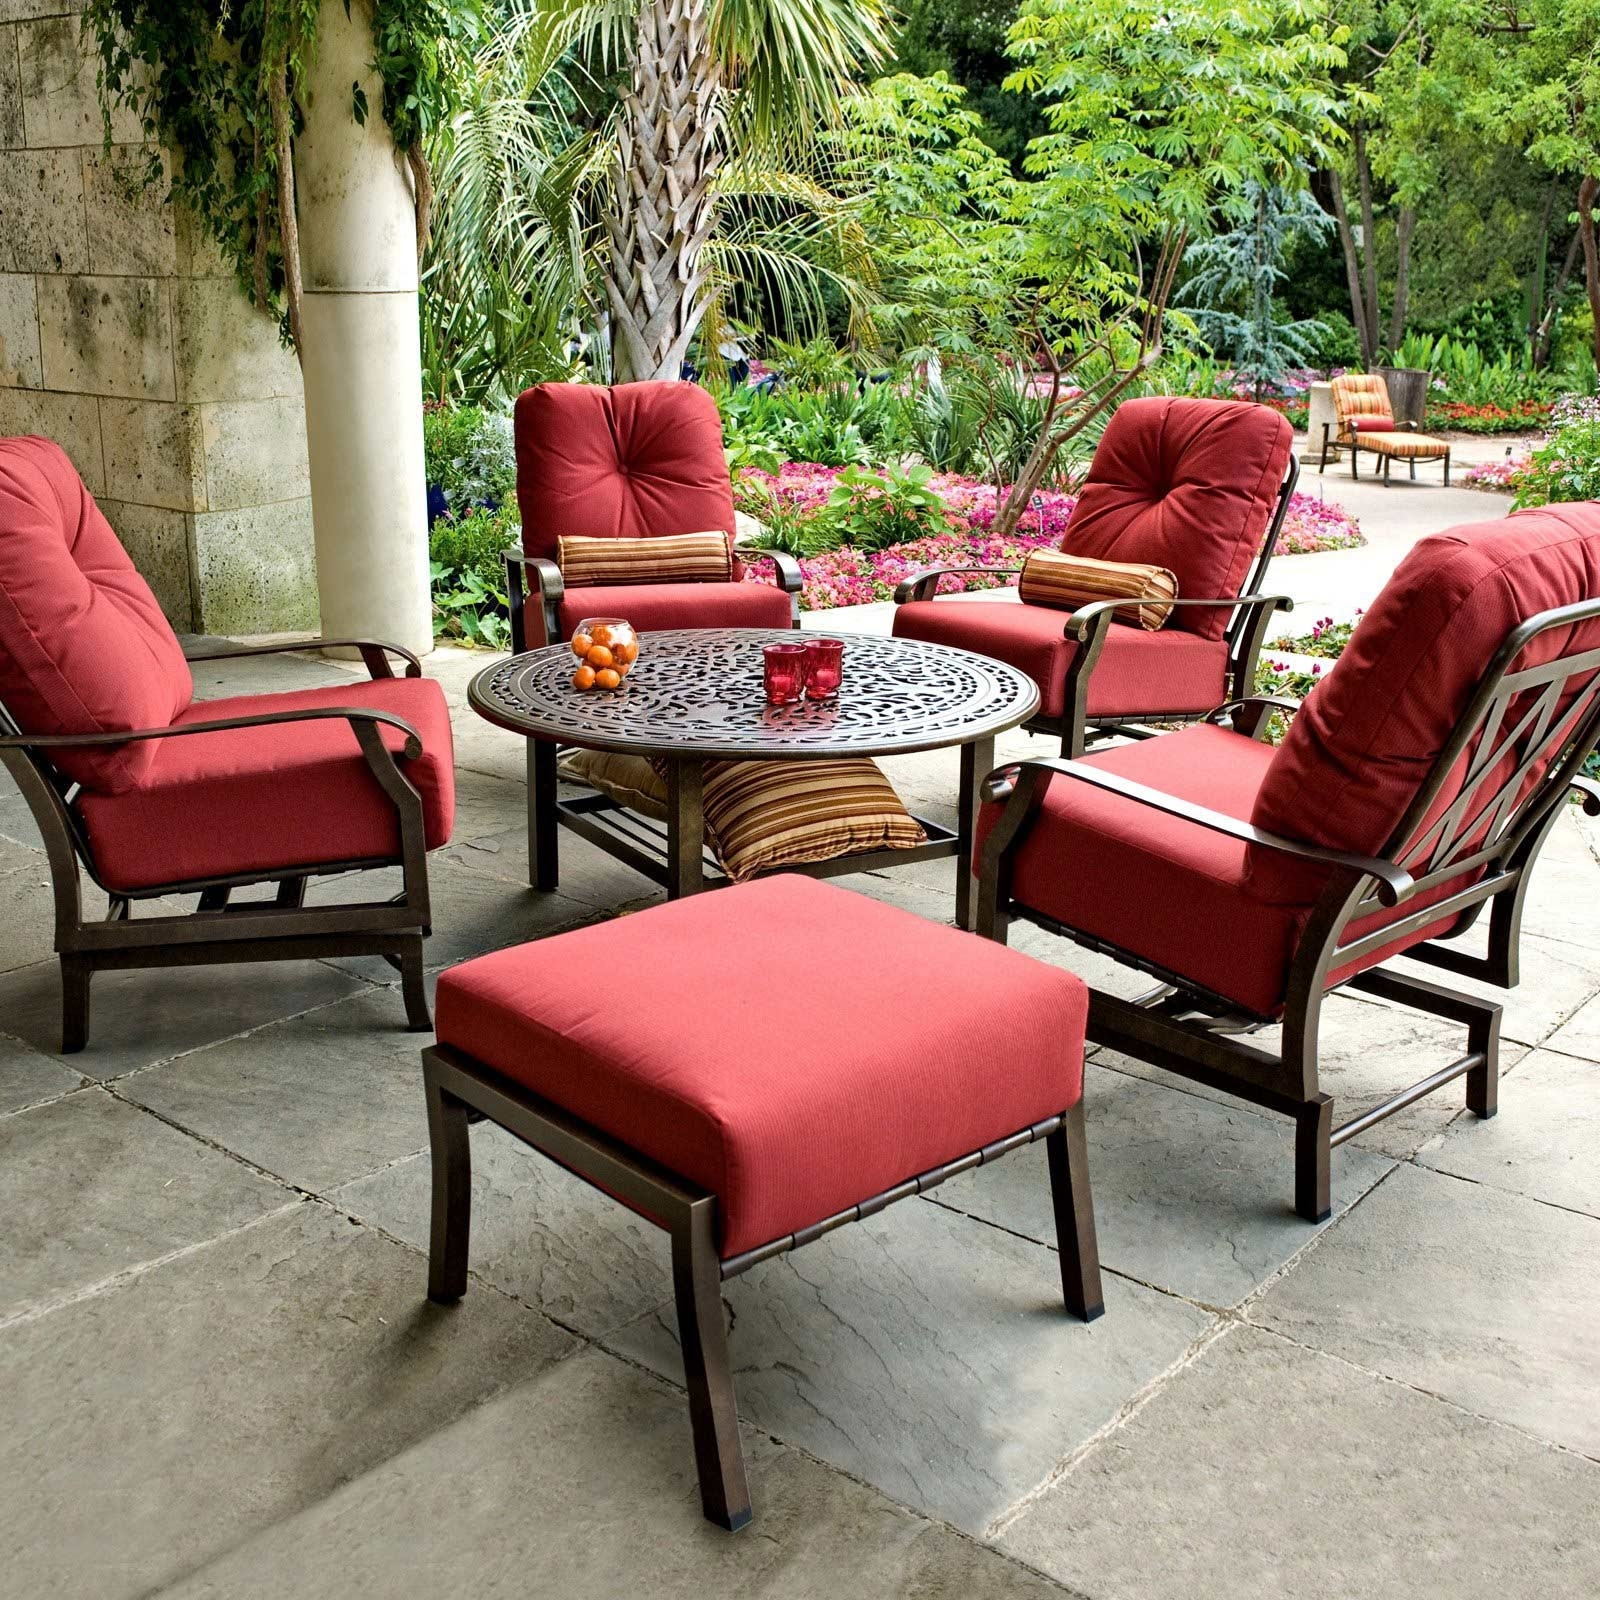 Dining Room Remarkable Garden Exterior Decor With Comfortable Throughout Red Outdoor Seat Cushions Red Outdoor Seat Cushions Set For Patio